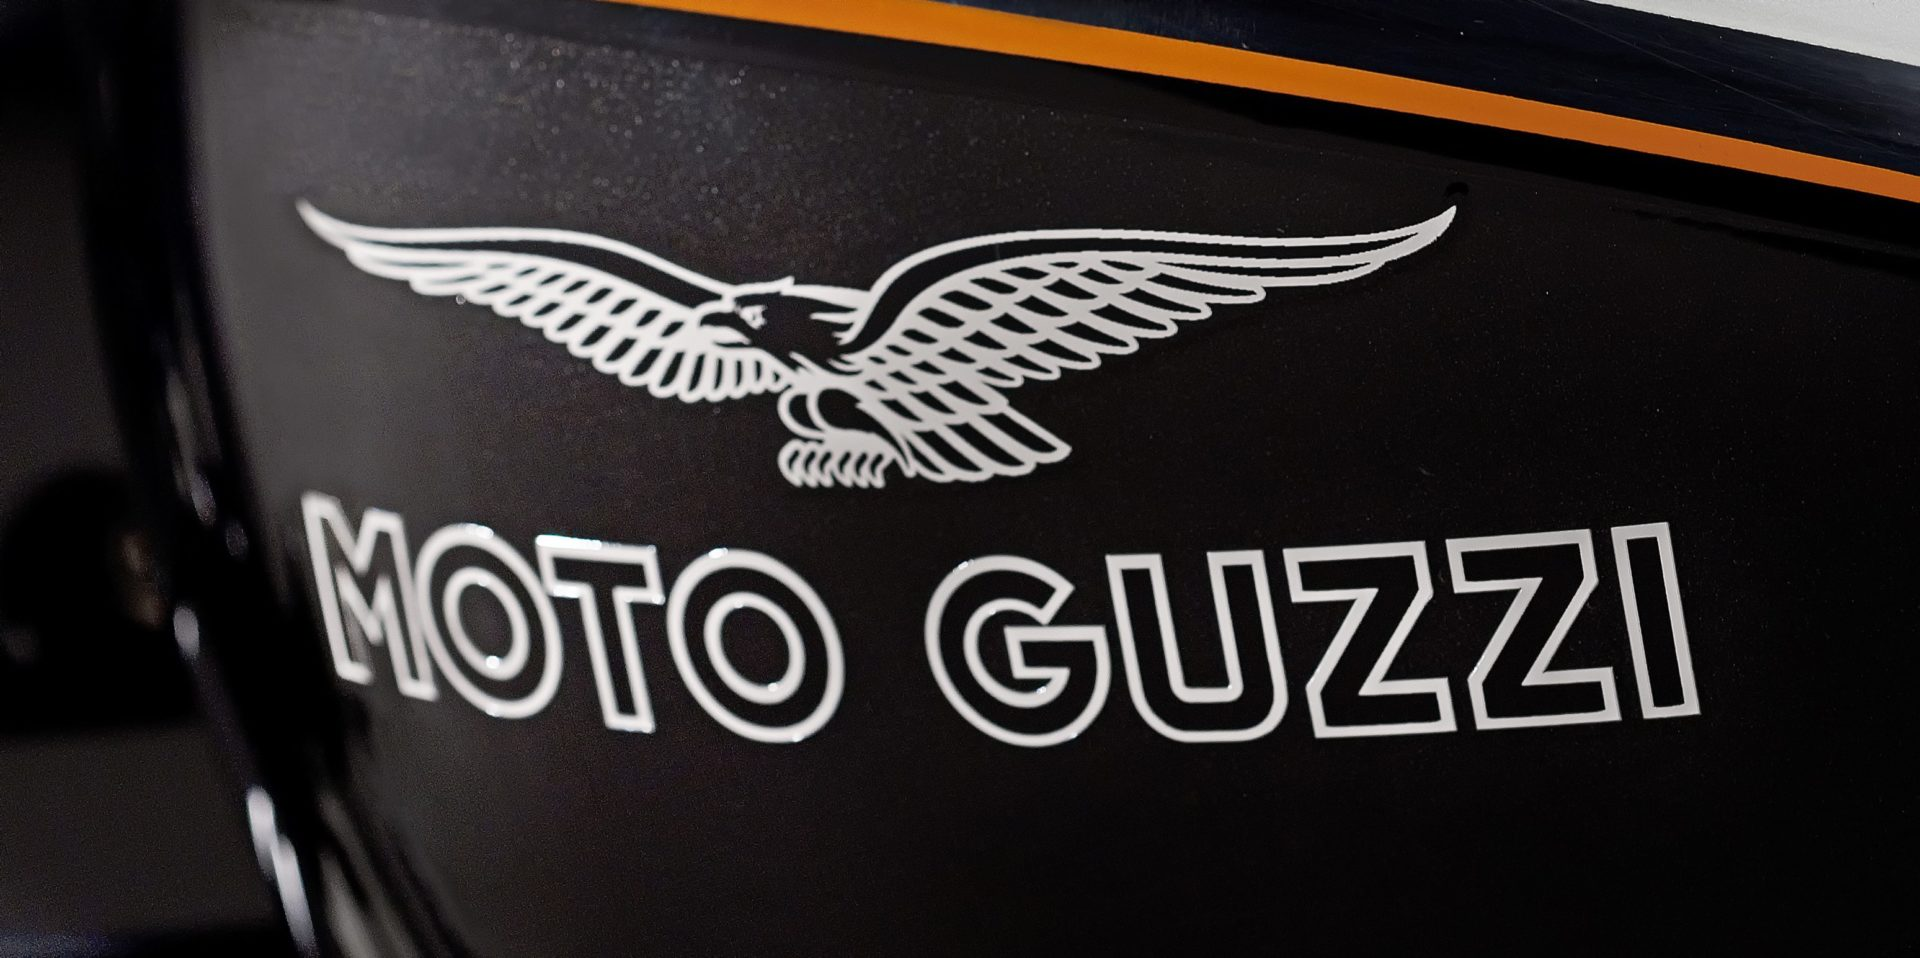 Soaring Golden Eagle Moto Guzzi motorcycle ...